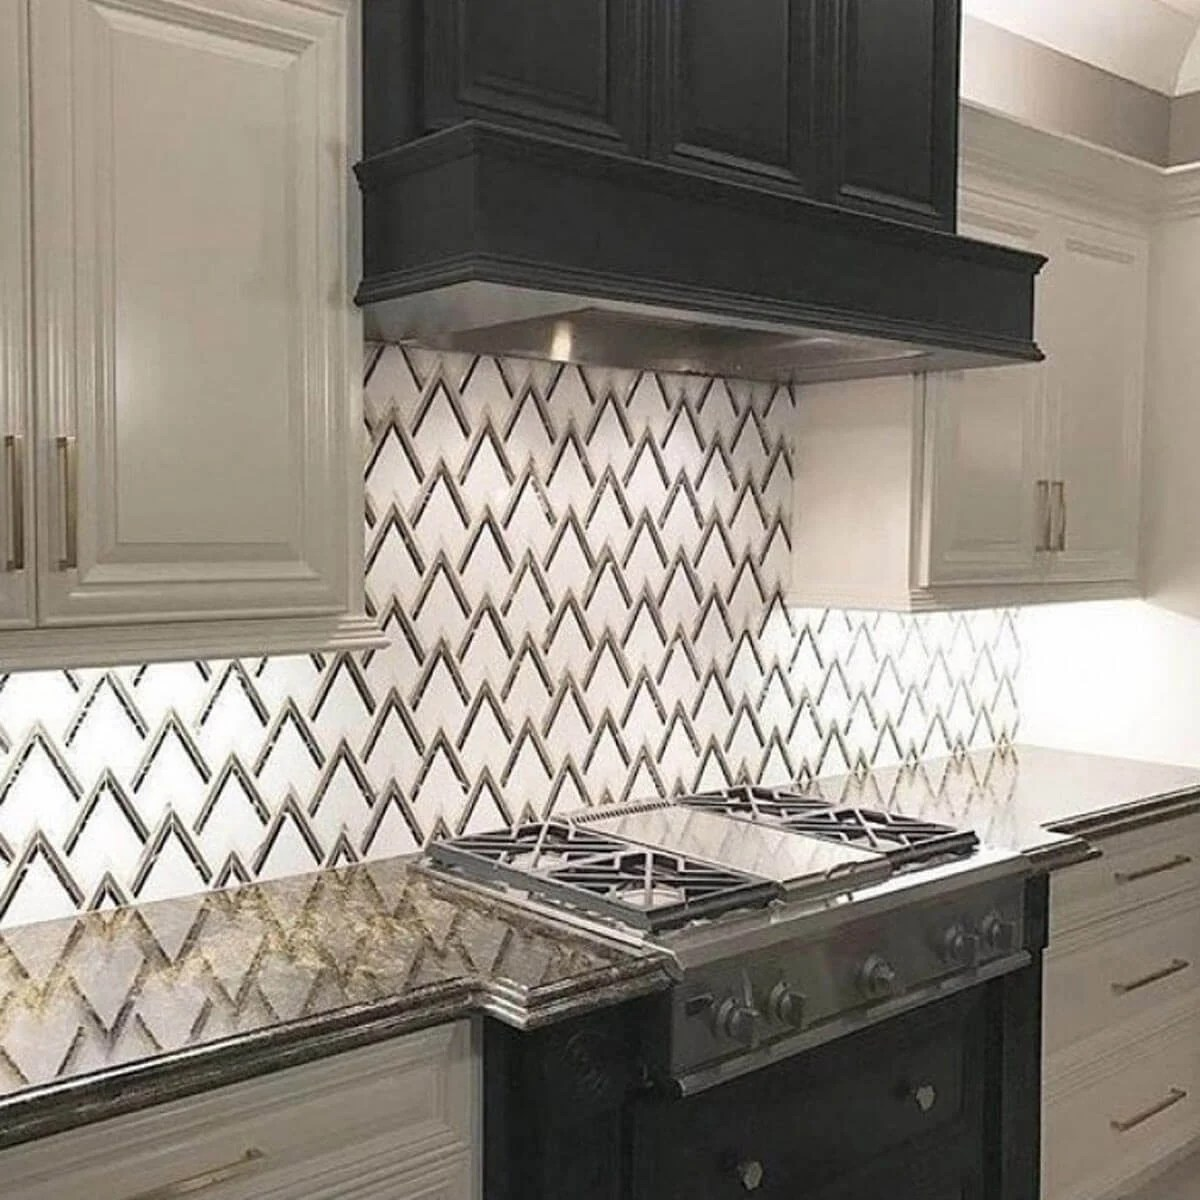 Pictures Of Backsplash In Kitchens The 30 Backsplash Ideas Your Kitchen Can T Live Without The